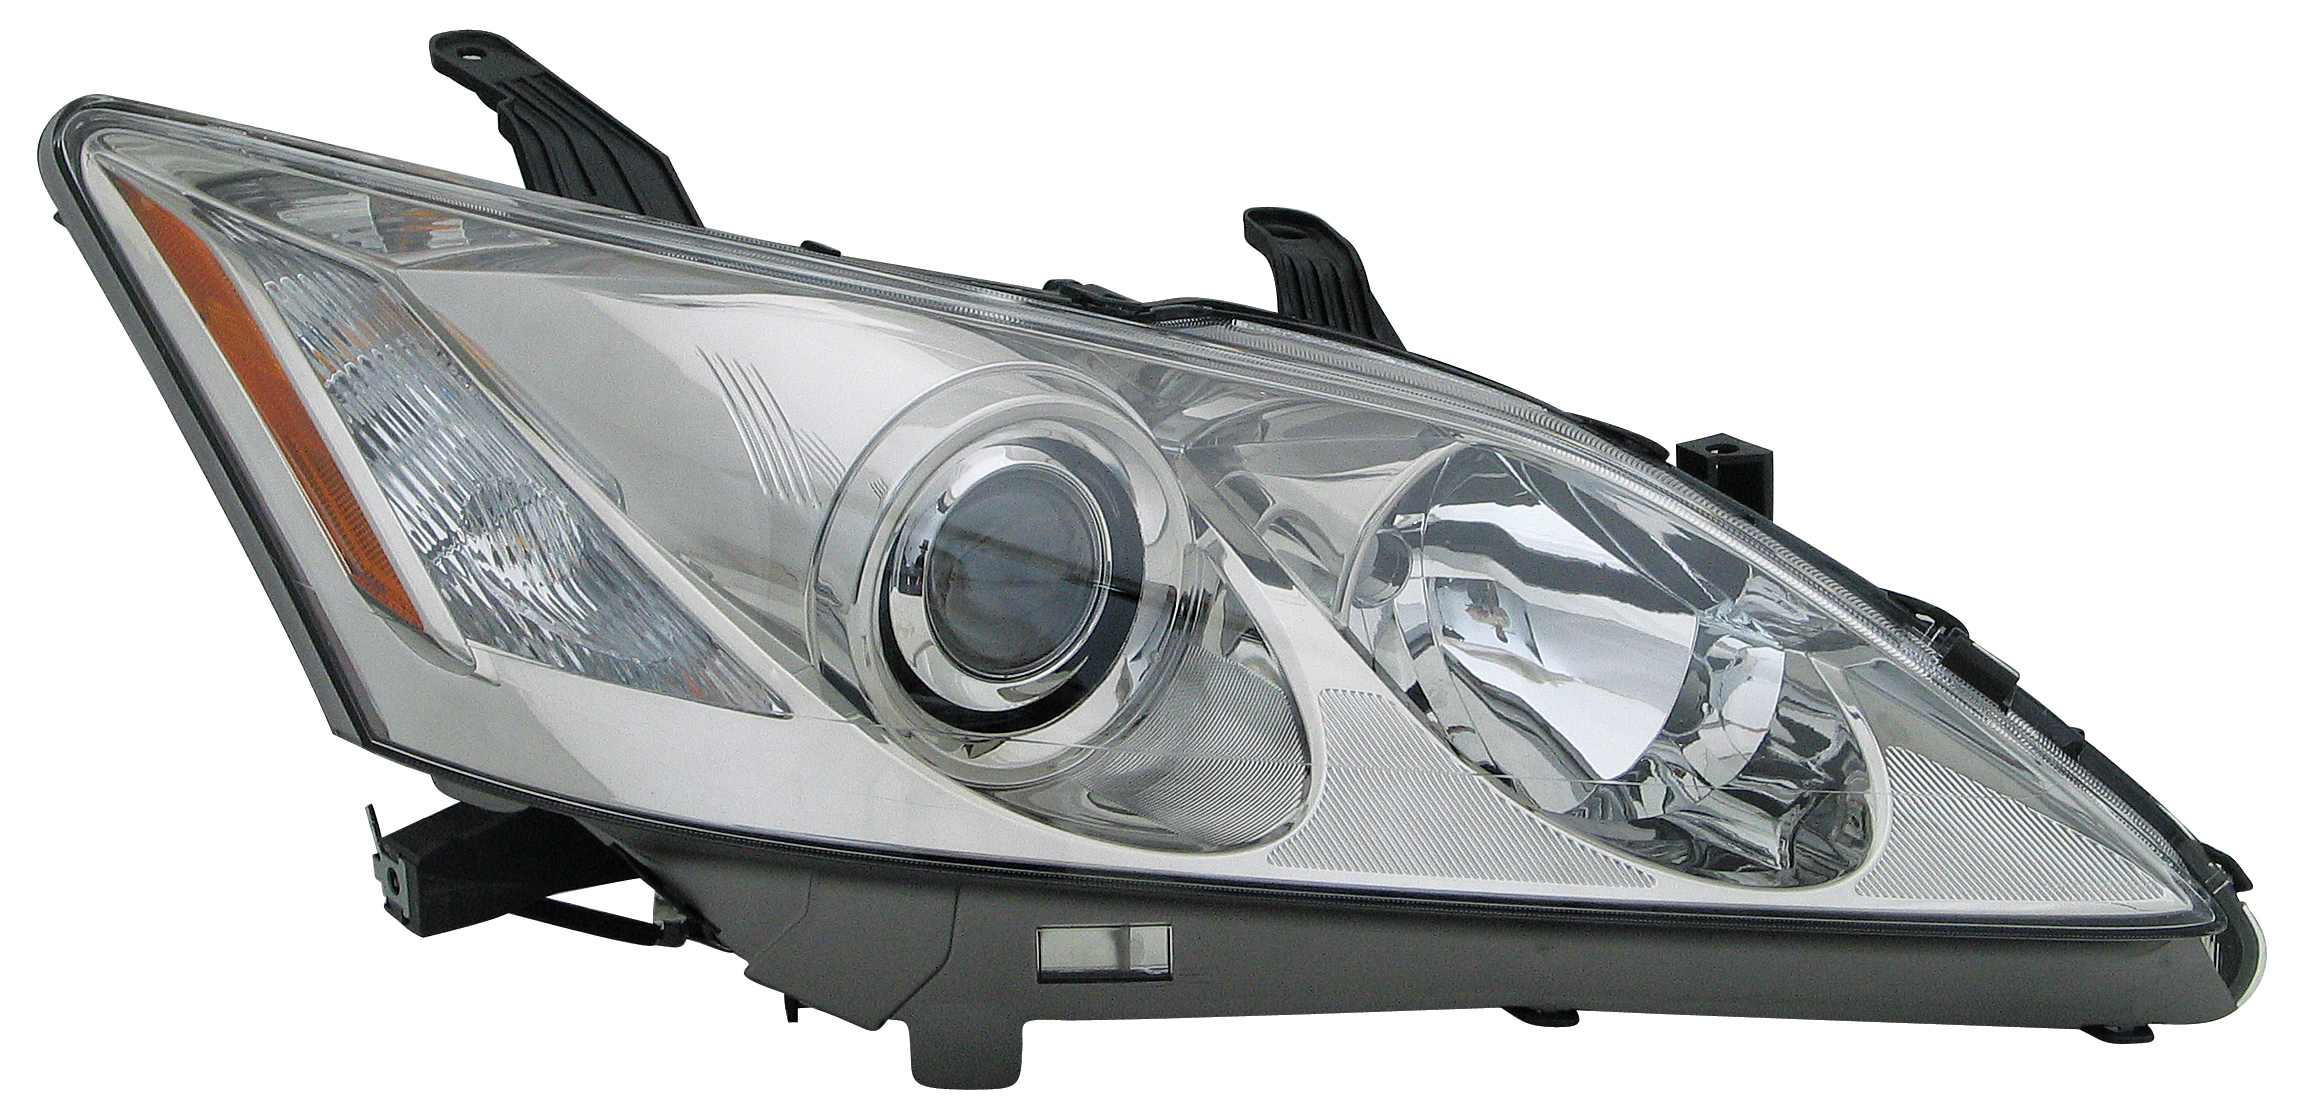 Taiwan Excellence Official Adaptive Lighting System For Automobiles Front